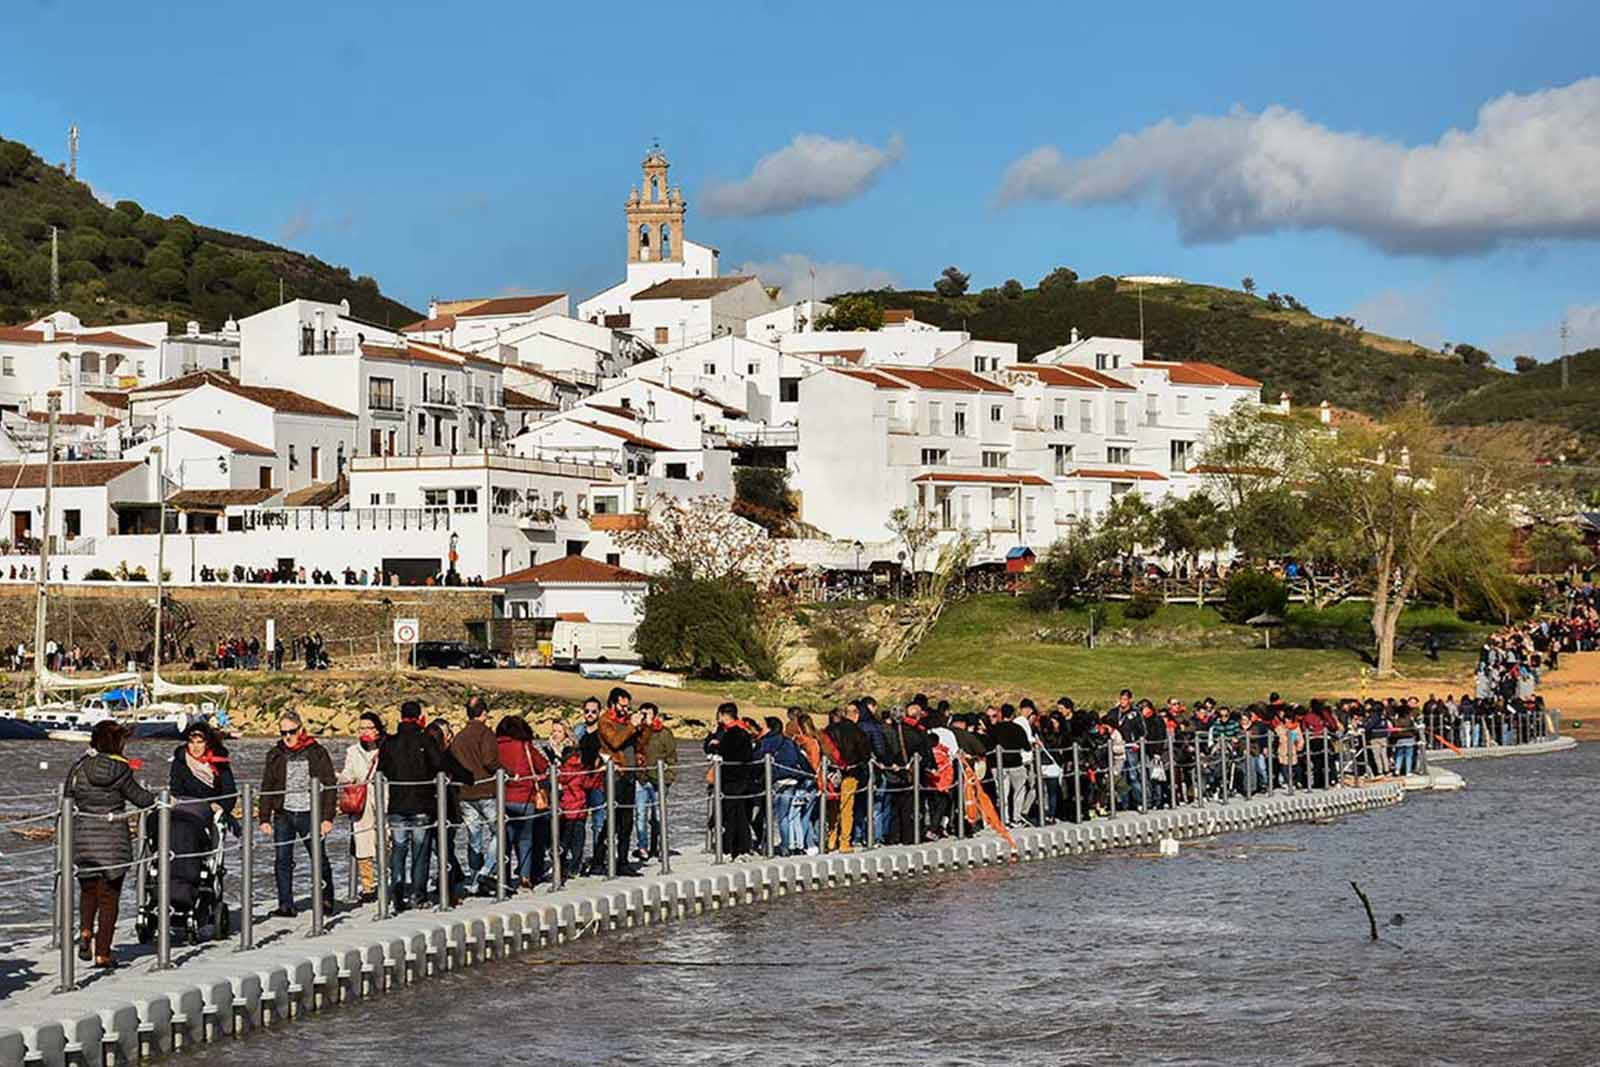 Visitors of the Contraband Festival crossing the Guadiana river during the best family event in the Algarve.